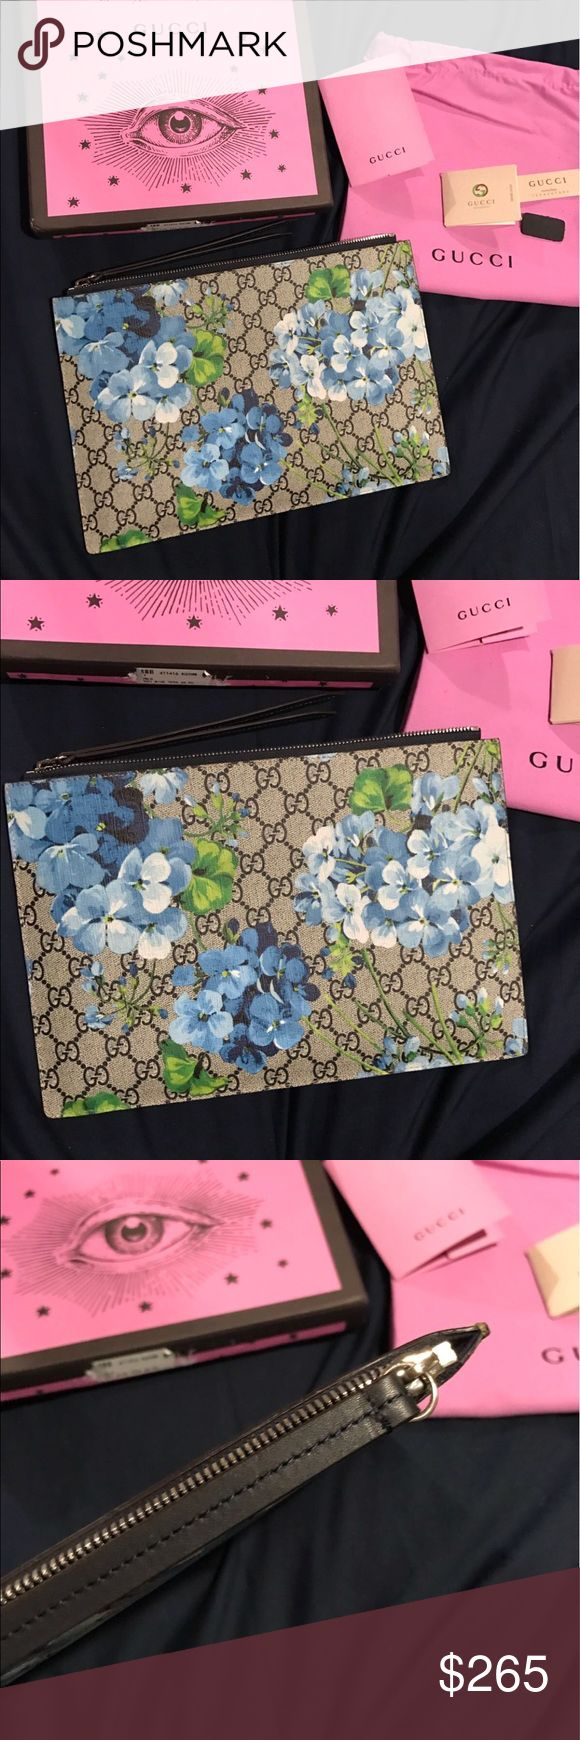 Gucci Blooms Floral Clutch Bag 🌺🌸🌷 Brand new! Comes with box and dust bag. Amazing quality. Price r e f I e c t s!! Large size clutch. Please ask all questions before buying. What you see is what you get 😊 Gucci Bags Clutches & Wristlets